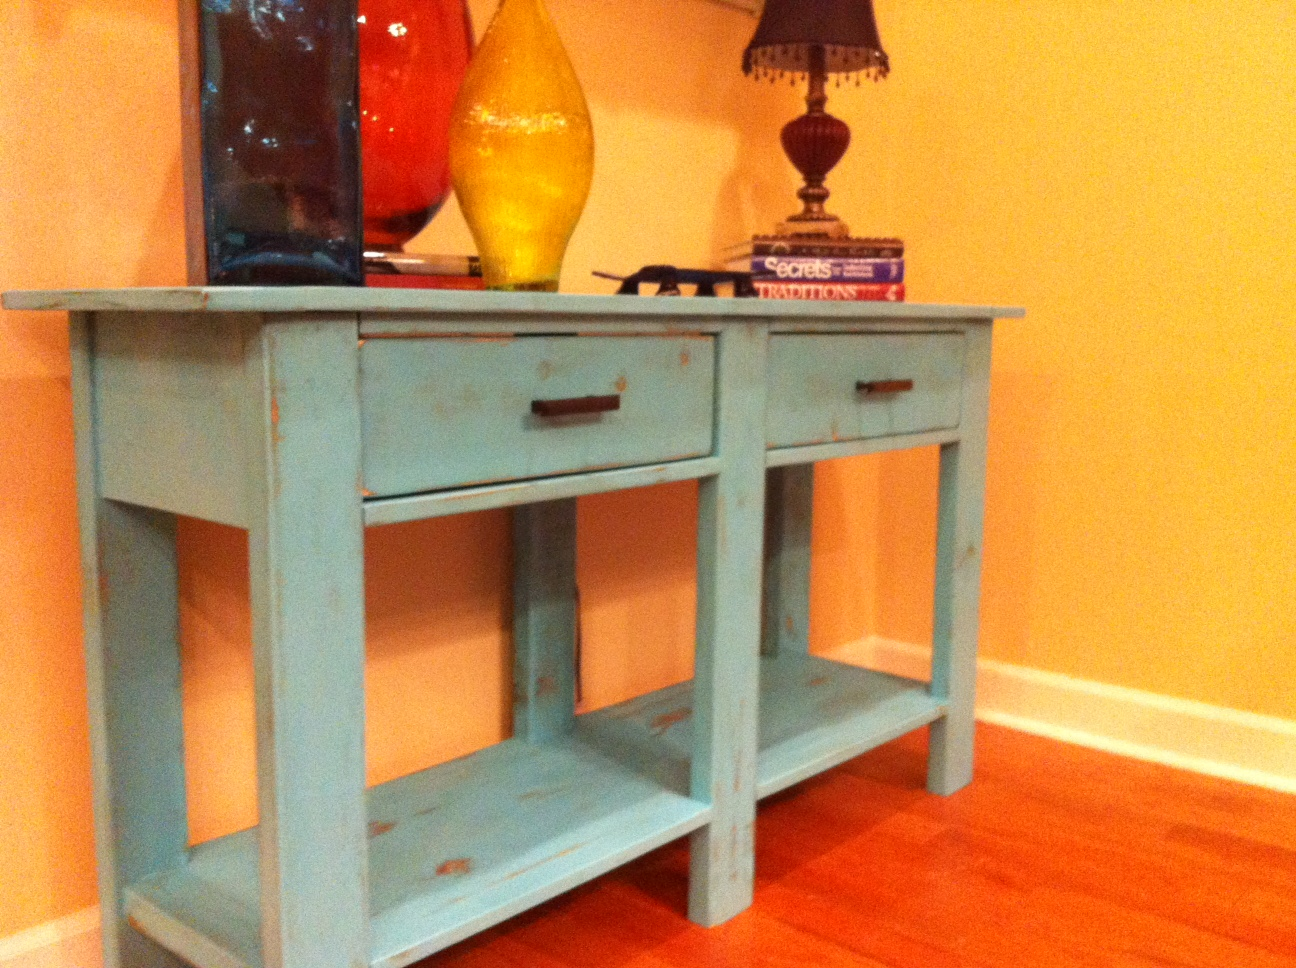 How to make a sofa table from 1 x 6 lumber - Make This Console Table From Lumber Free Diy Plans